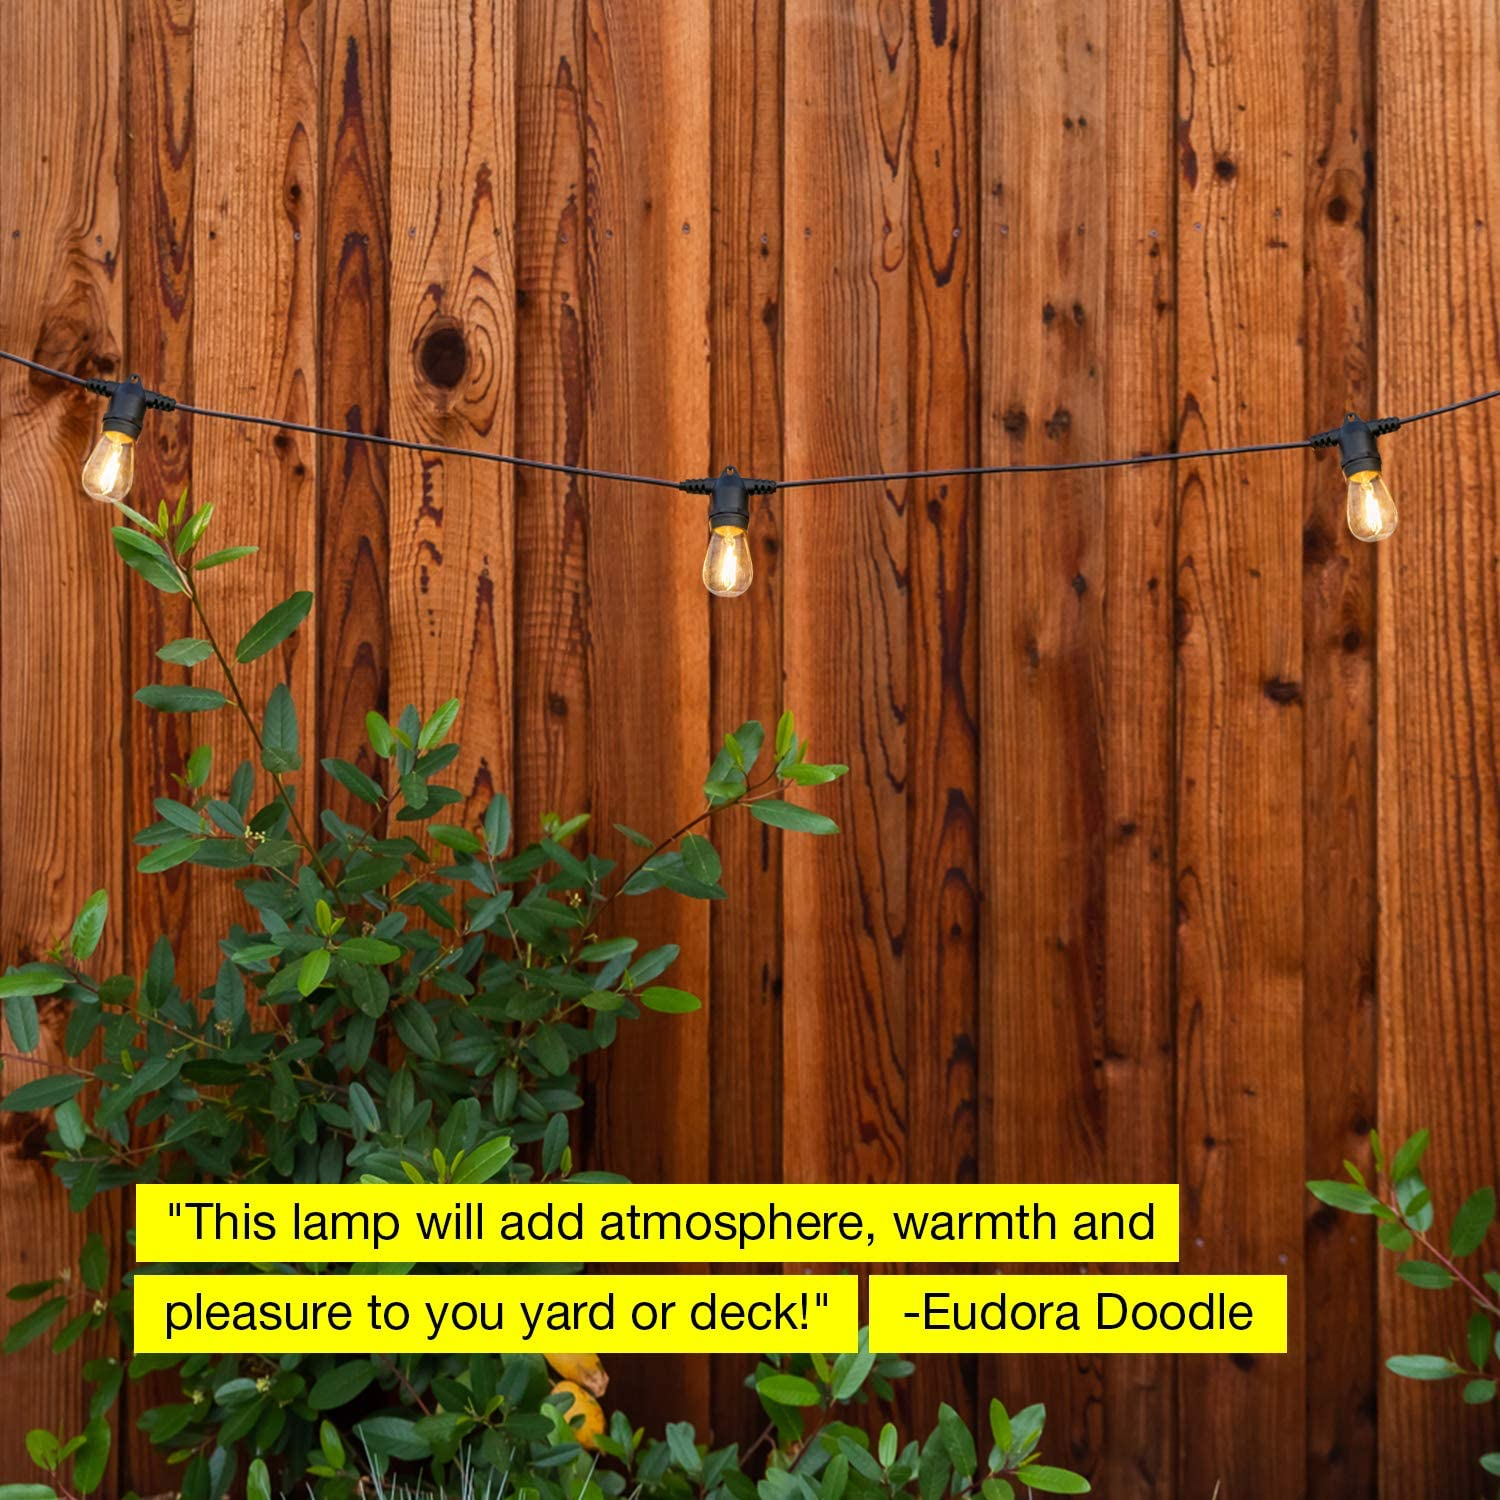 48 Ft Commercial Grade Patio Lights 2W Vintage Edison Bulbs Create Bistro Ambience in Your Backyard Brightech Ambience Pro Waterproof LED Outdoor String Lights